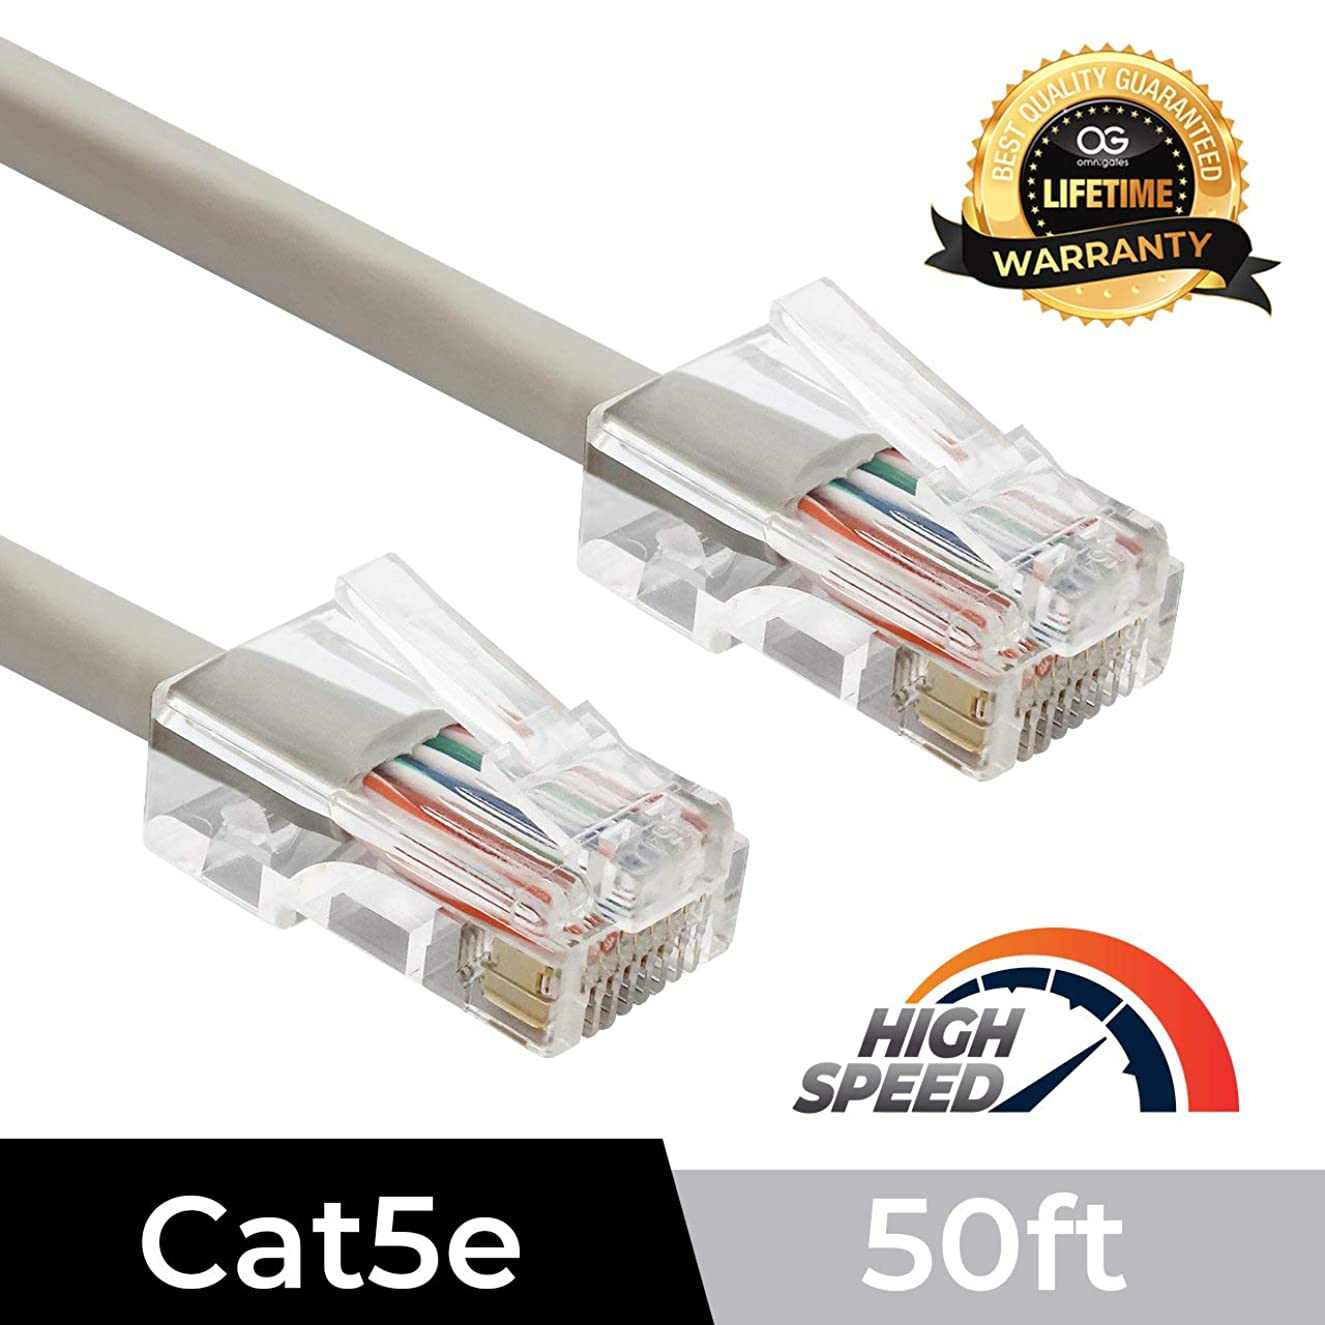 Omnigates 1ft Non Booted RJ45 Cat5e Ethernet Network Patch Cable Gold Plated UTP, Gray